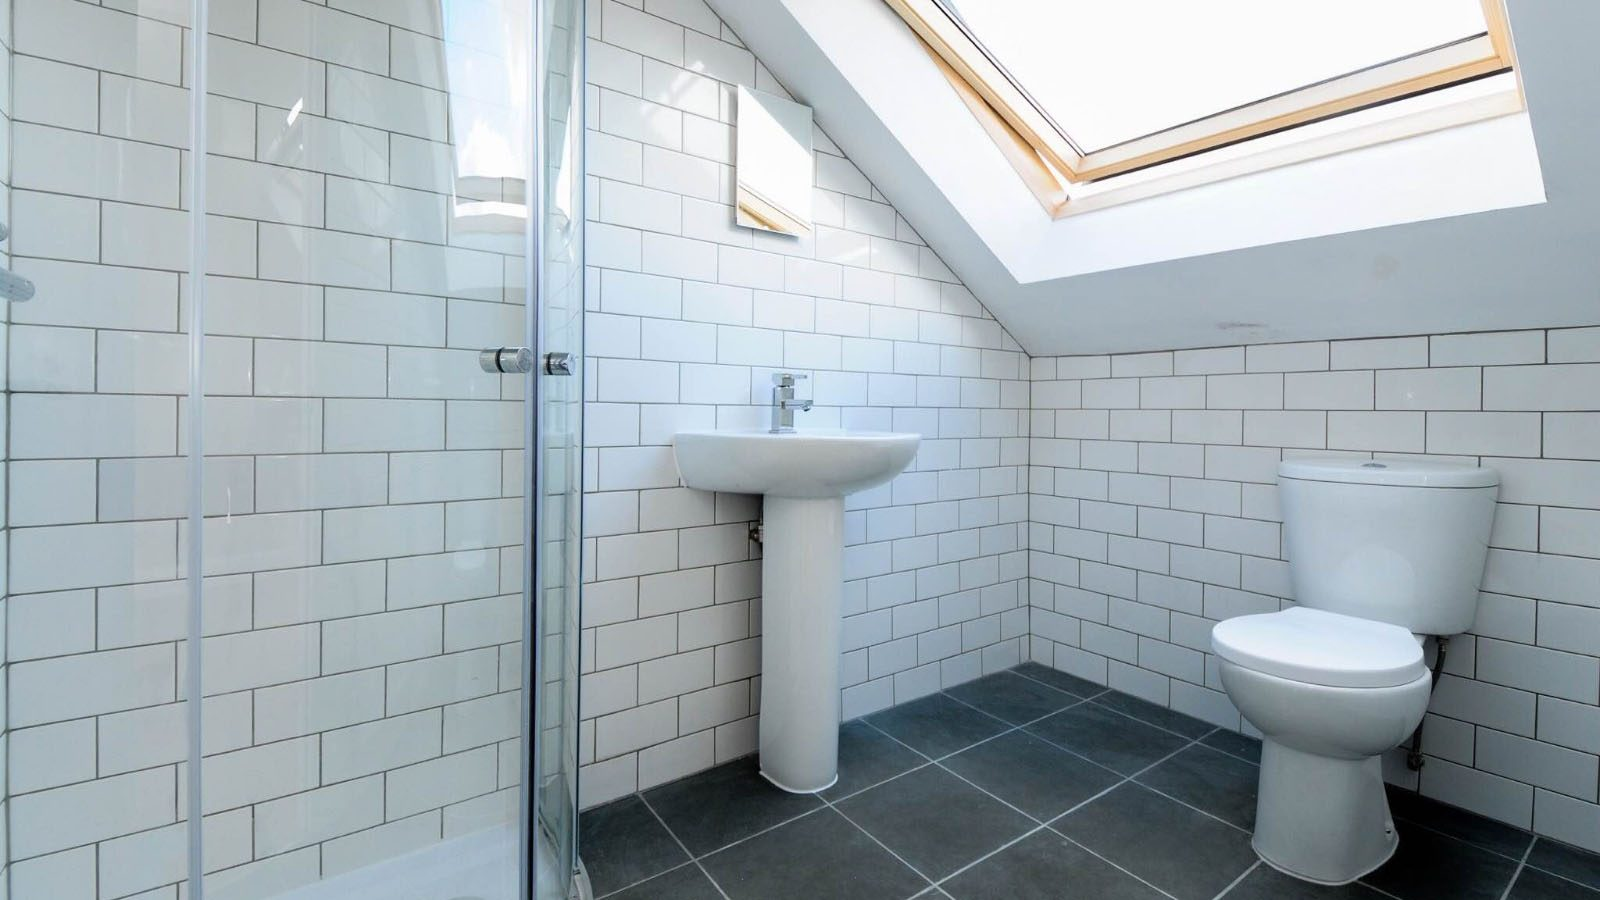 Planning permission for loft conversion - bathroom loft conversion